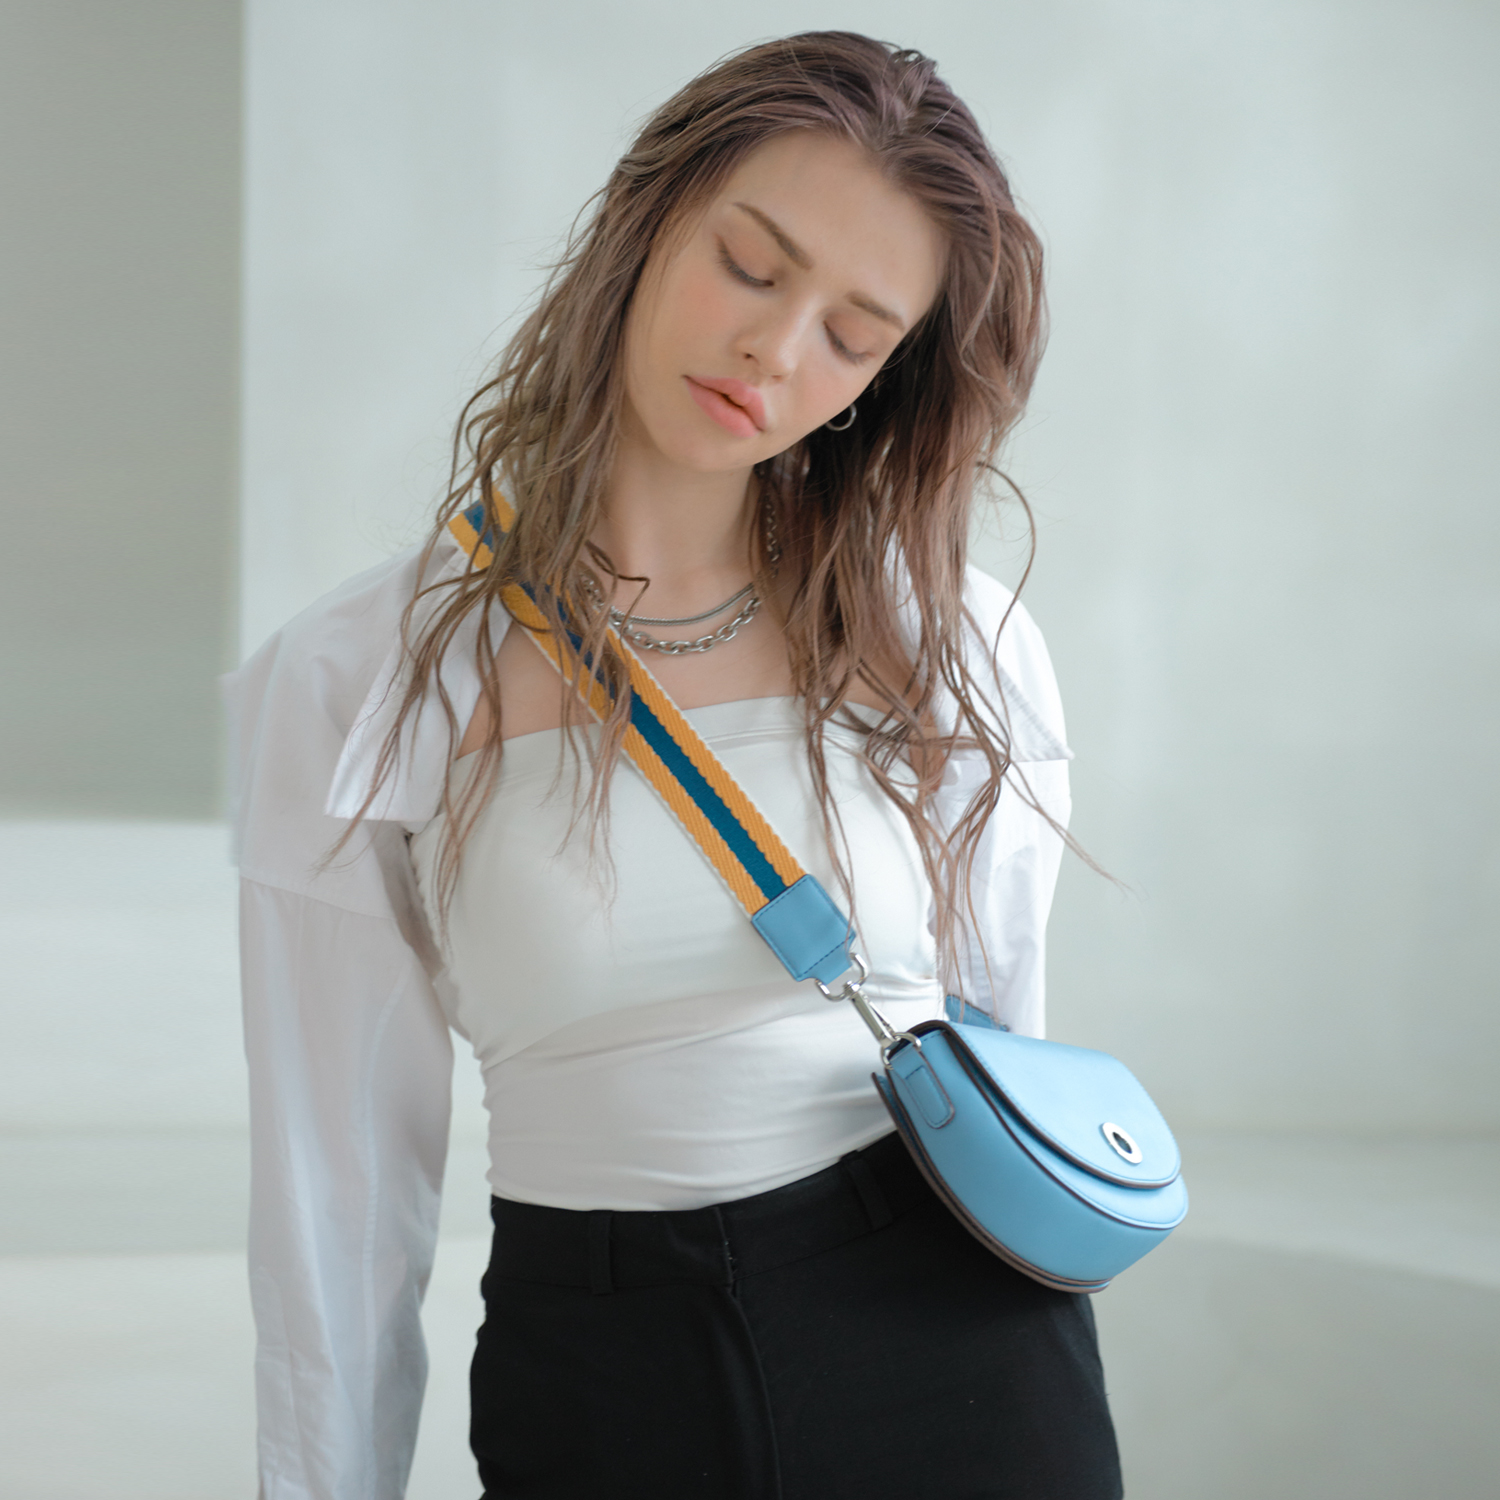 [투오]BELLO MINI CROSSBODY BAG 벨로 미니 크로스백_SKY BLUE